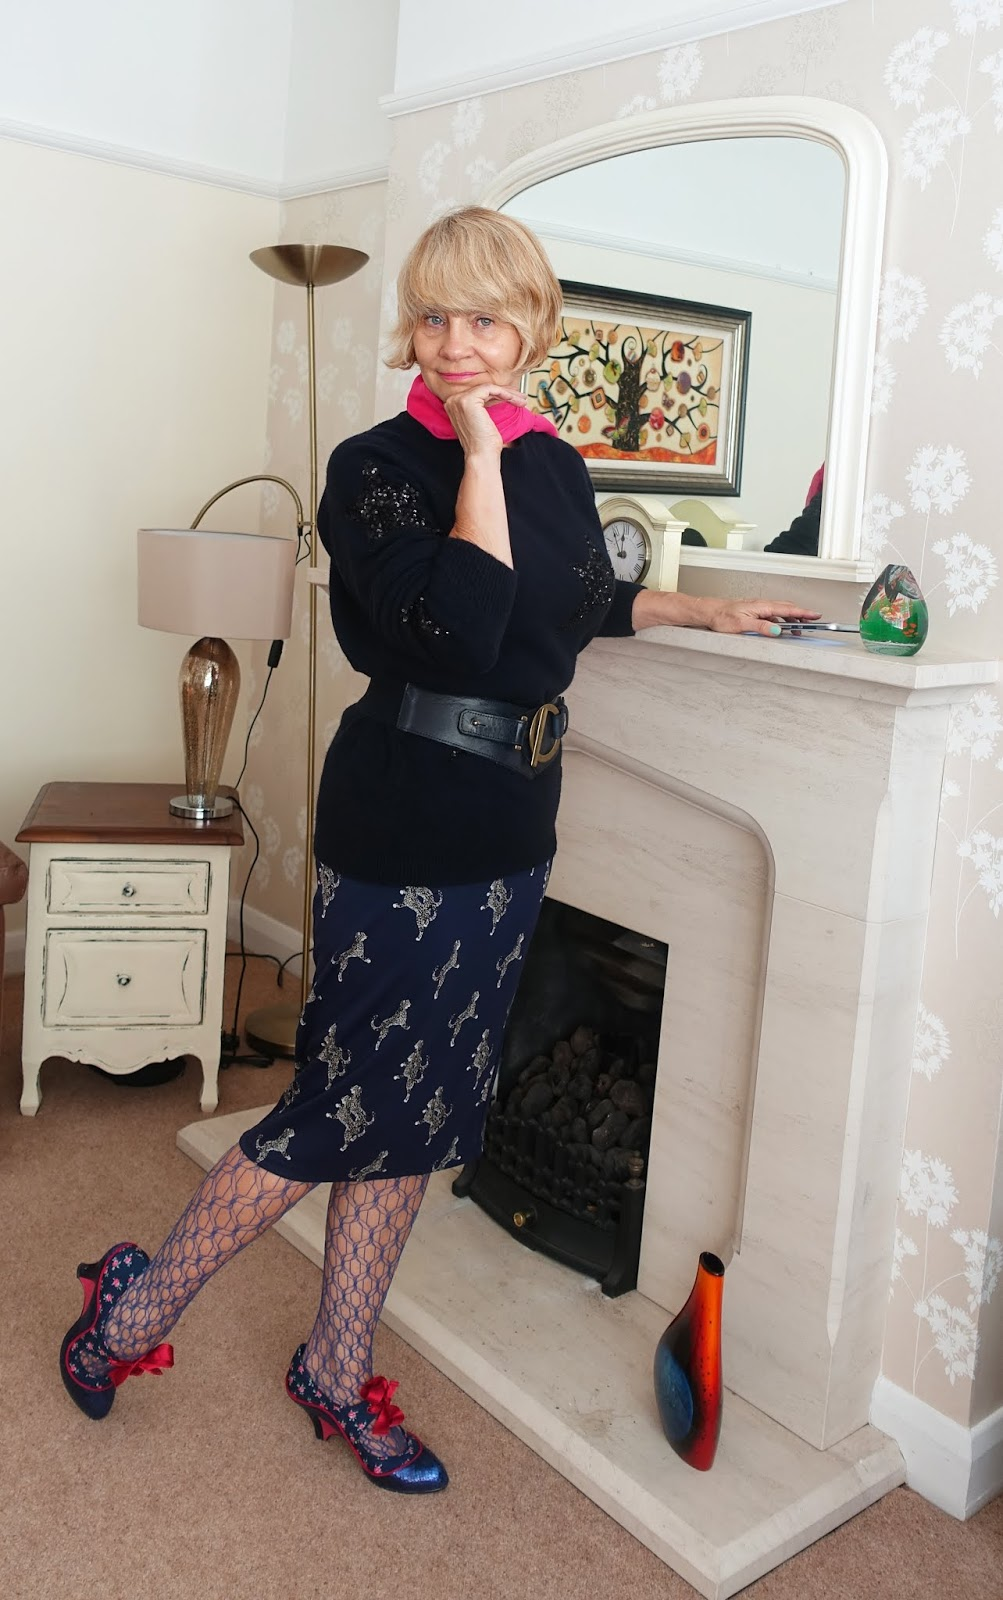 Over 40s blogger Gail Hanlon in winter attire in July, to show that you can find timeless bargains from previous seasons in the July sales. Here she is wearing a sequinned star jumper and Jaycee skirt from The-Bias-Cut.com